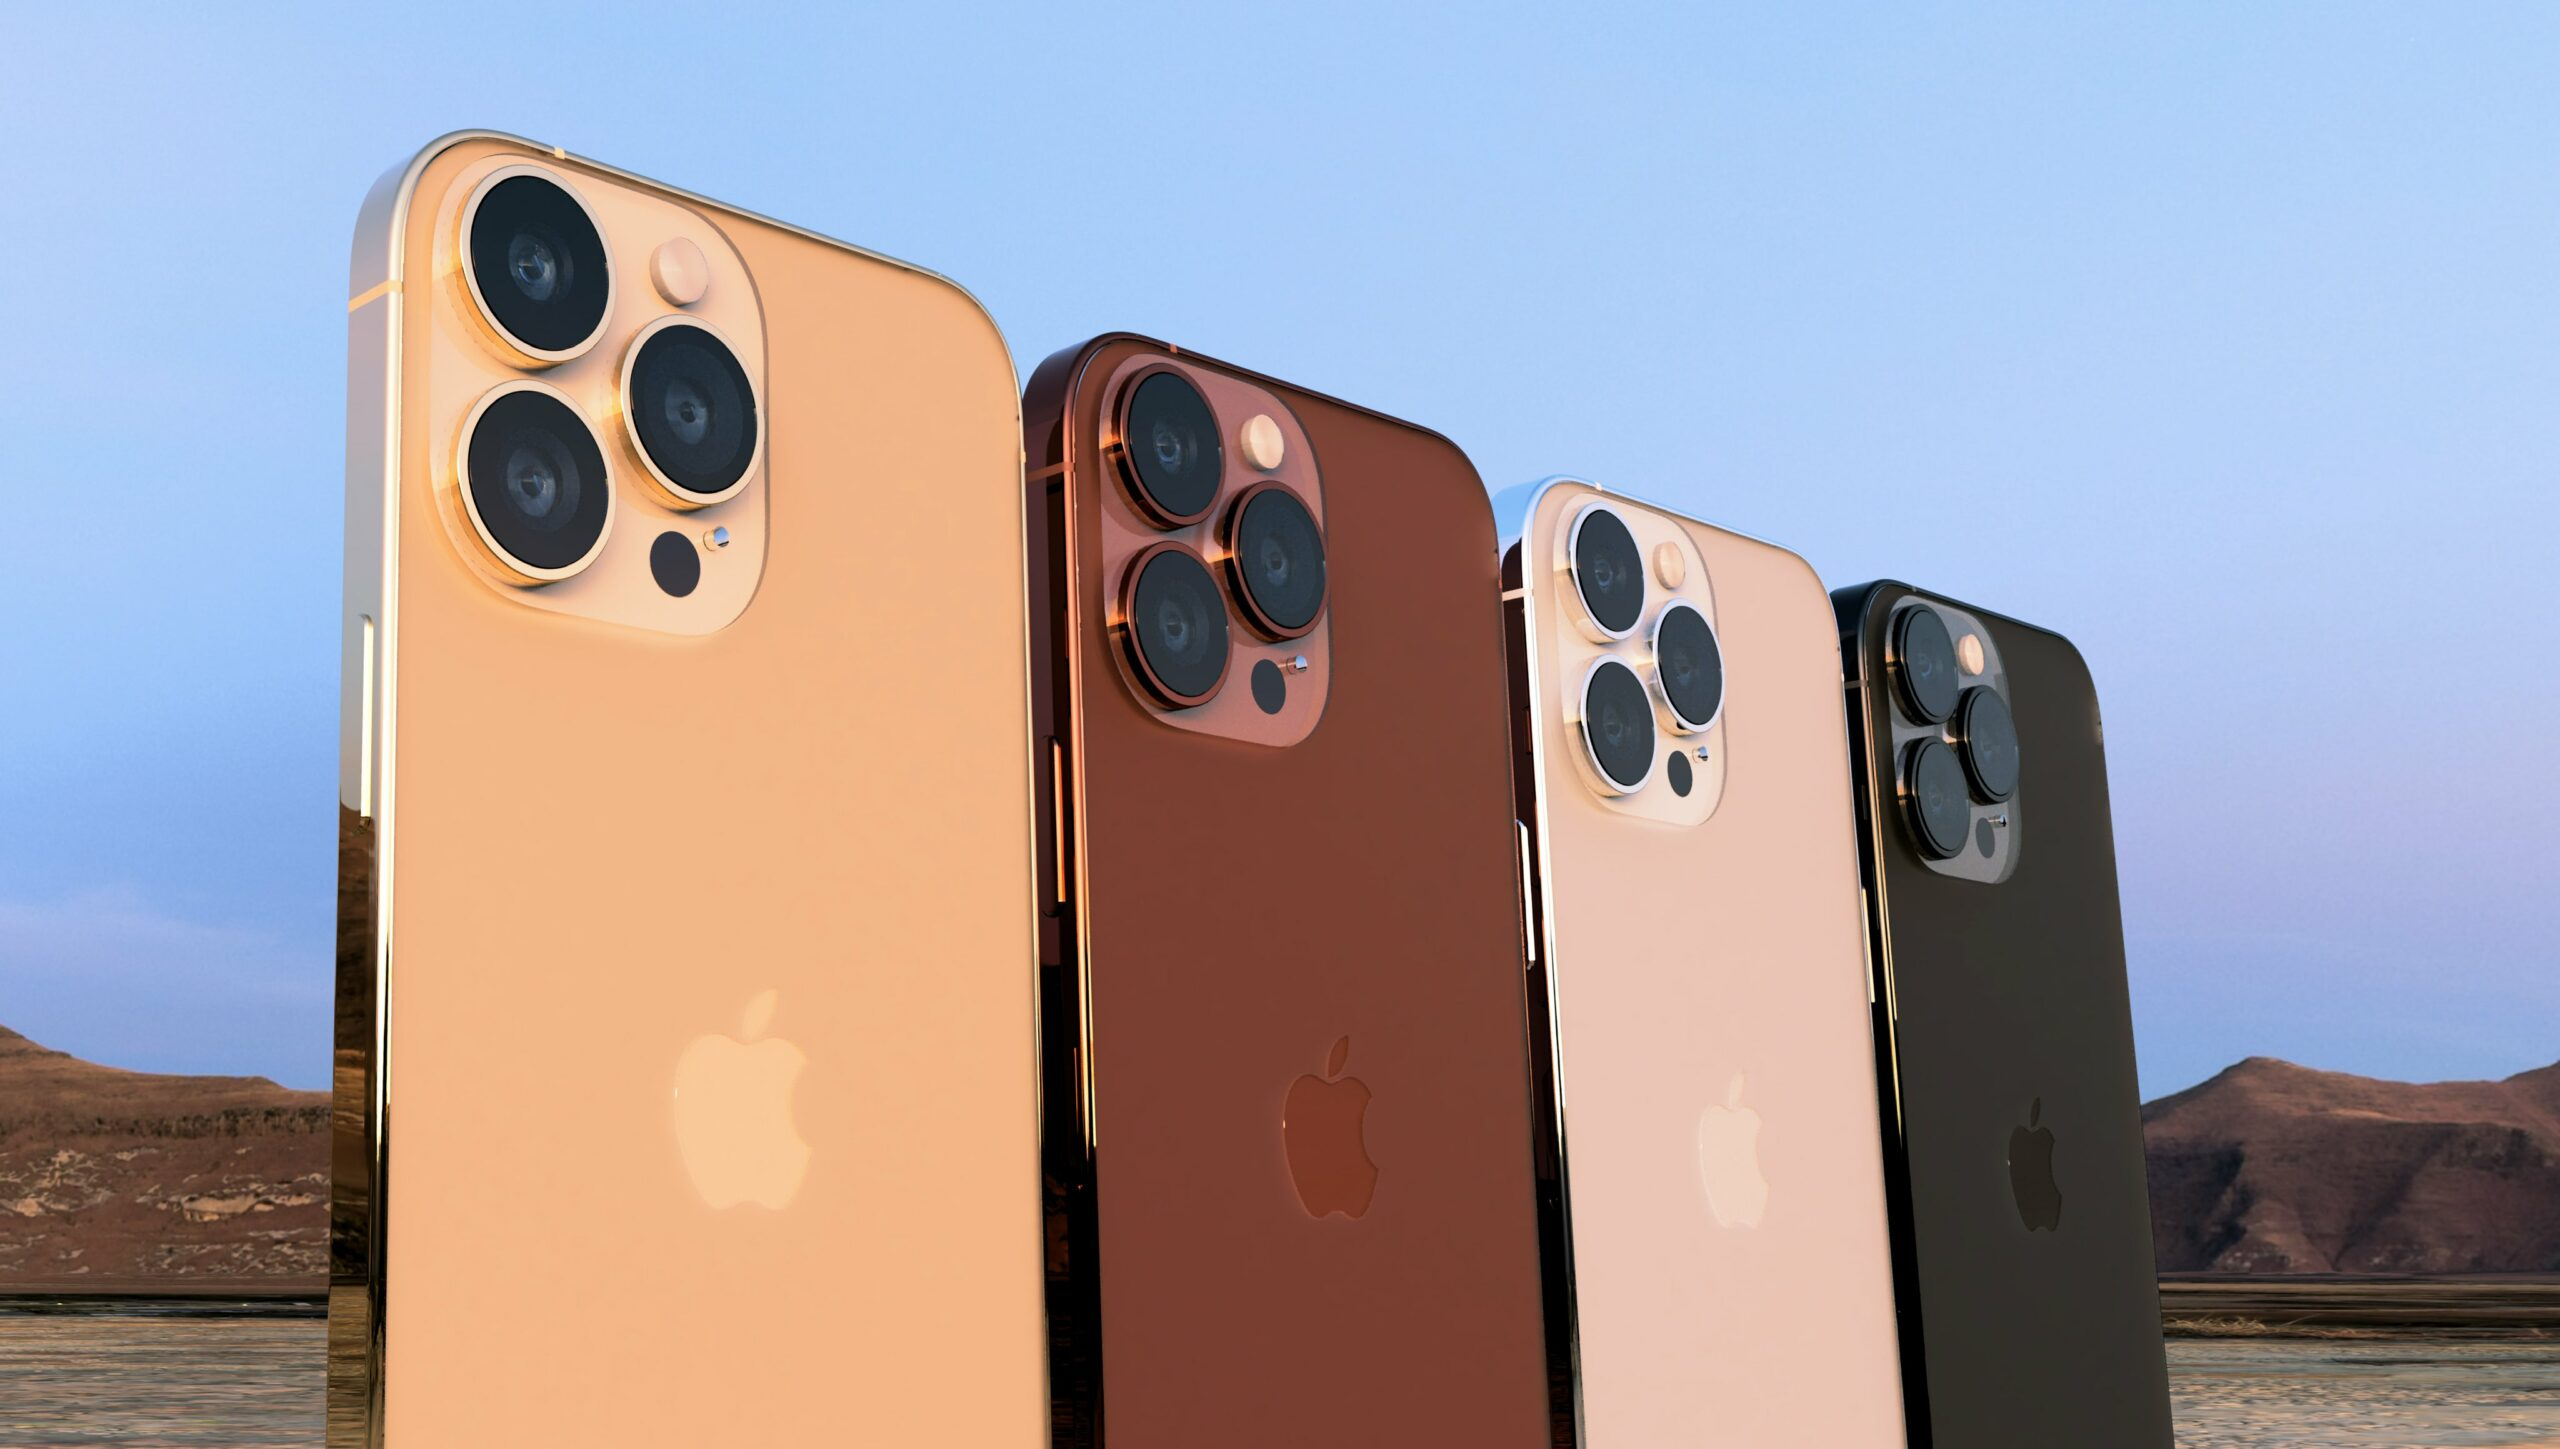 Apple iPhone 13 to feature LiDAR scanner & 1TB Storage